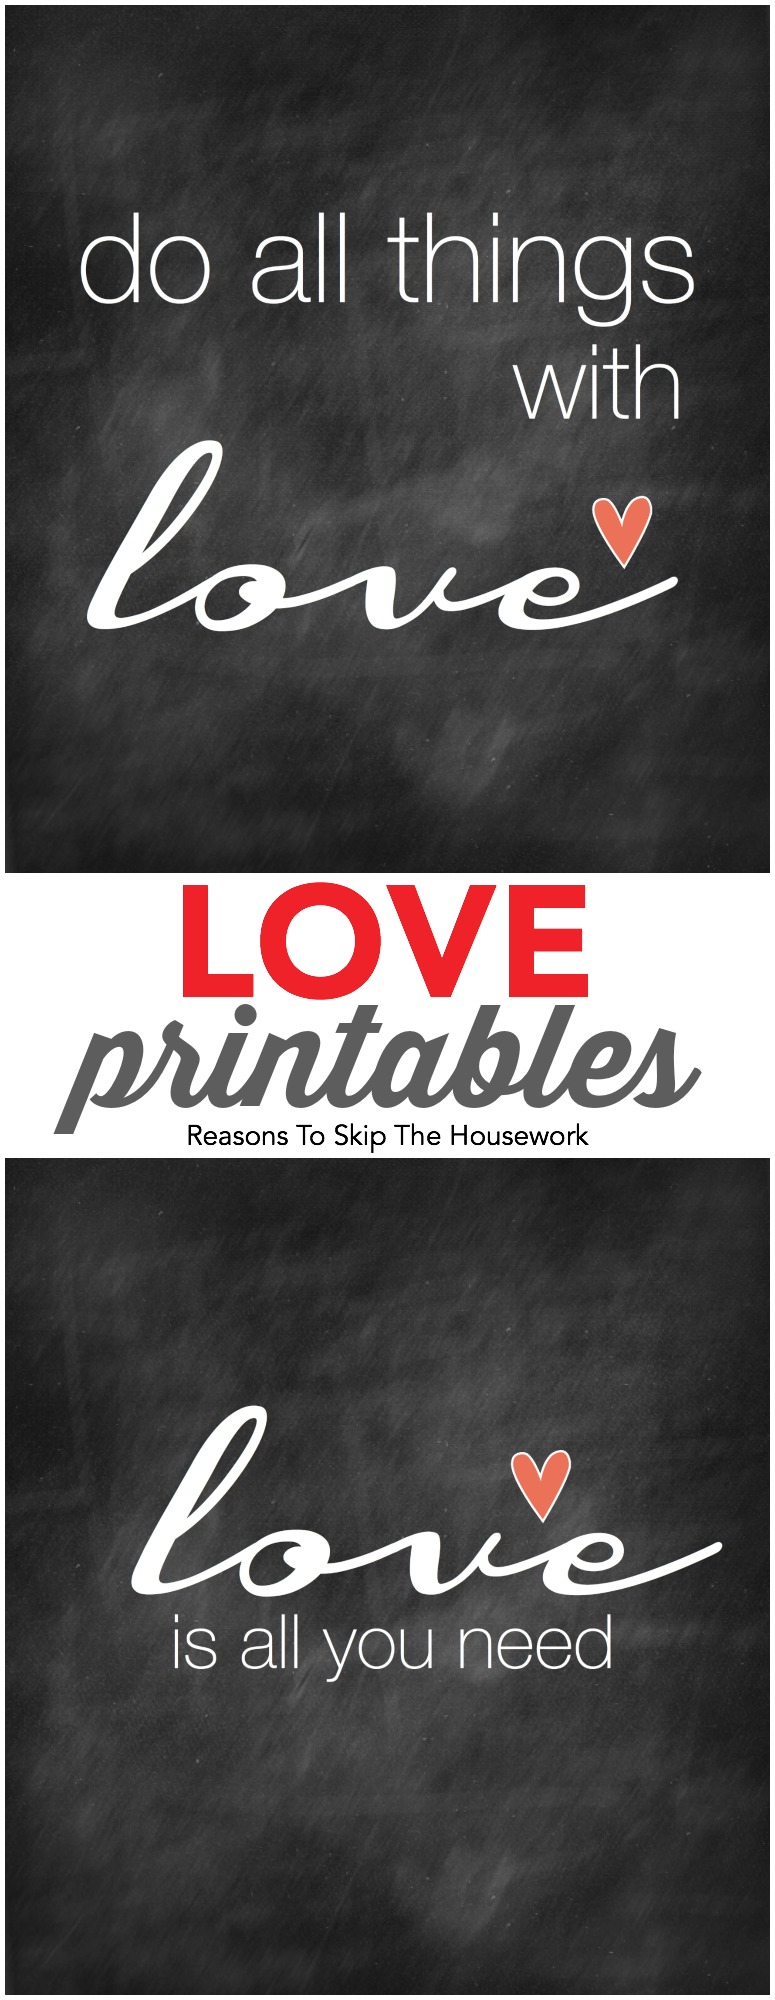 You can grab one of these cute Free Printable Love Signs to use to help decorate your home this Valentine's Day!